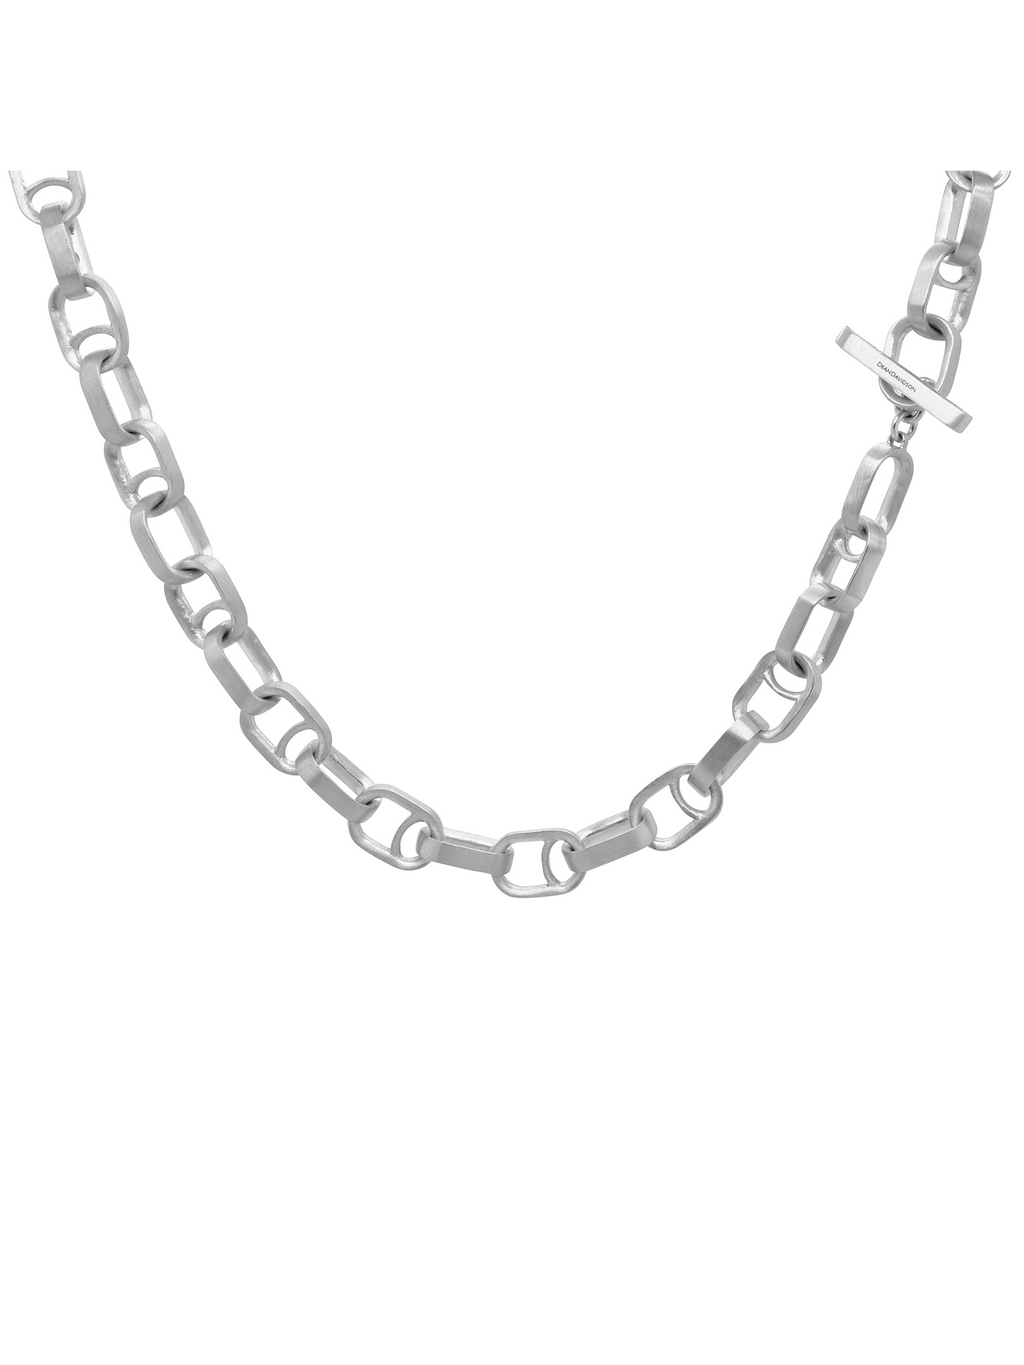 Dean Davidson Manhattan Chain Link Statement Necklace